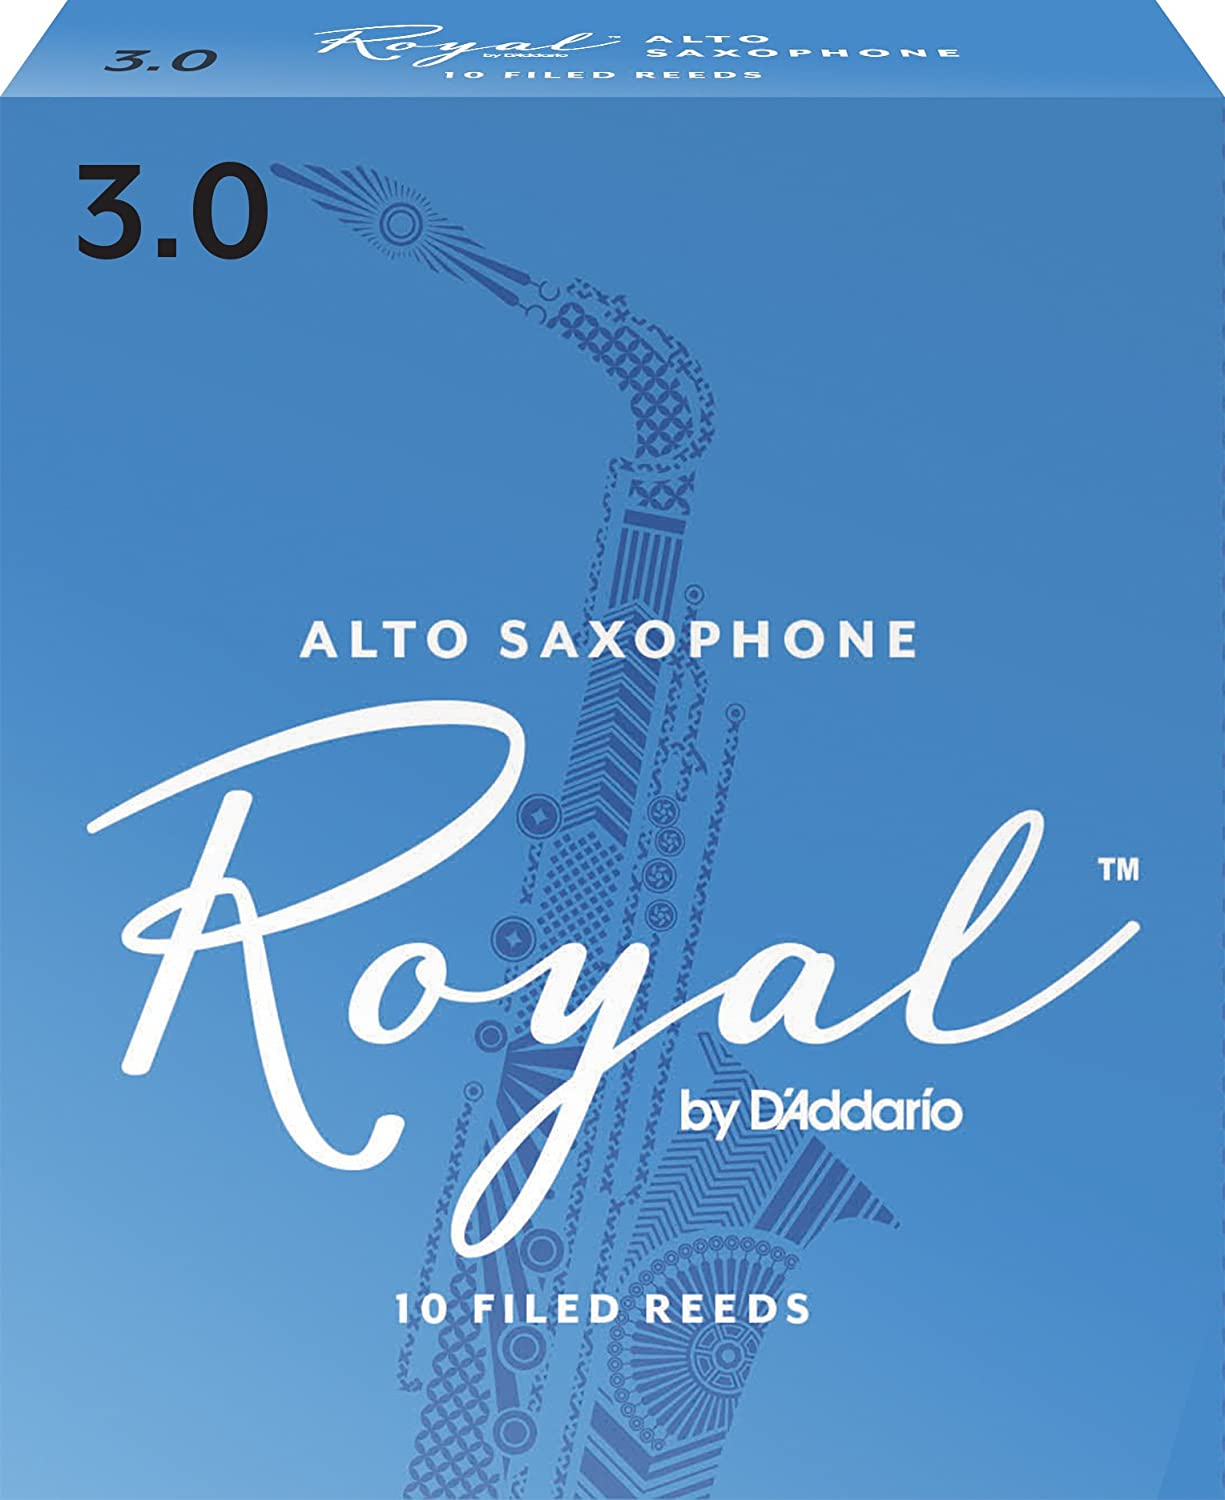 Rico Anches Rico Royal pour saxophone alto, force 4.0, pack de 10 D' Addario Ltd RJB1040